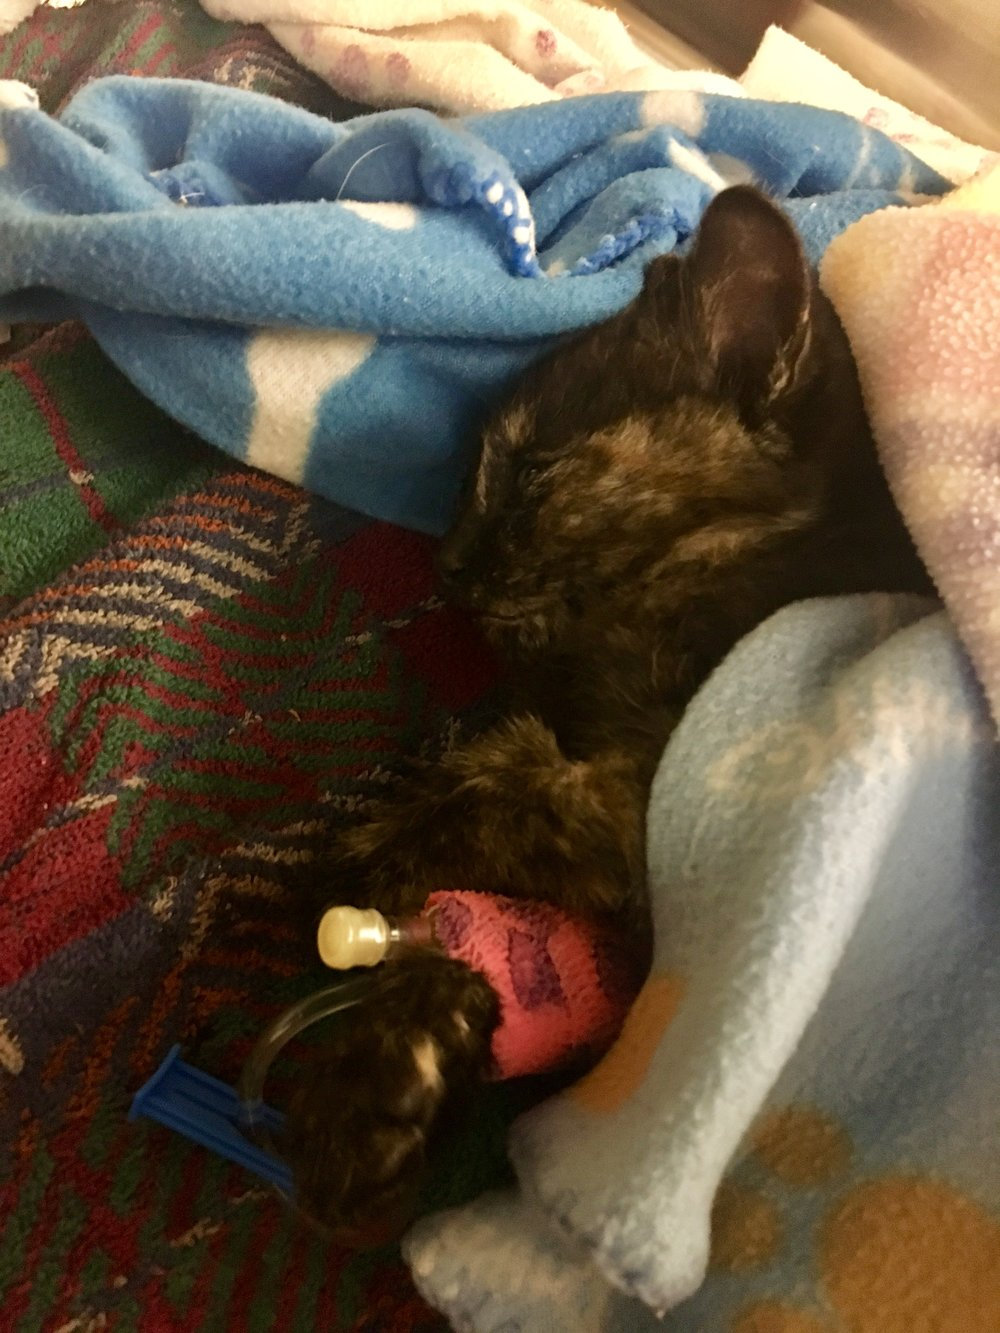 Eden on the day of her rescue. She was suffering from life-threatening injuries including a collapsed lung, broken tail and broken pelvis.